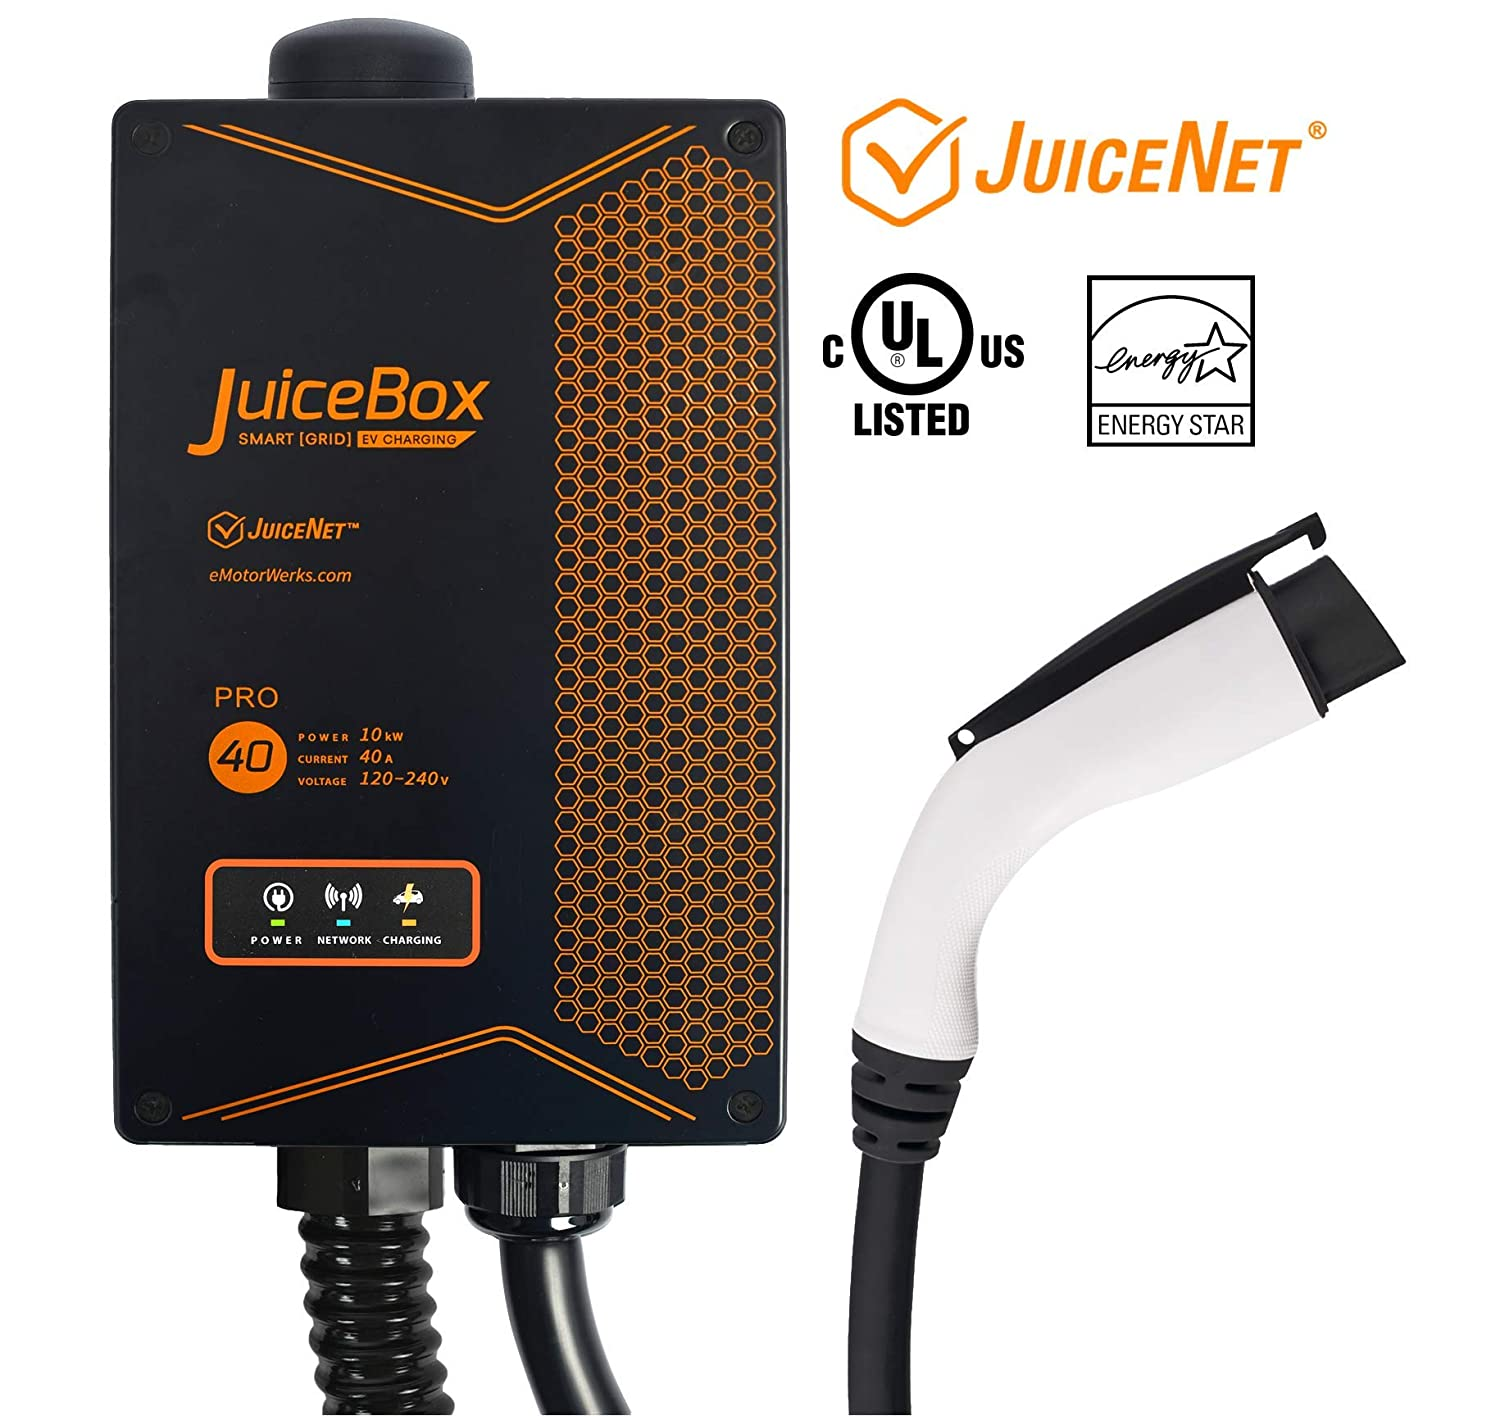 Juicebox Pro 40 With Juicenet Wifi Equipped Amp Ul Listed Conduit Wiring Futureproof System Electric Vehicle Charging Station Evse 24 Foot Cable Hardwired